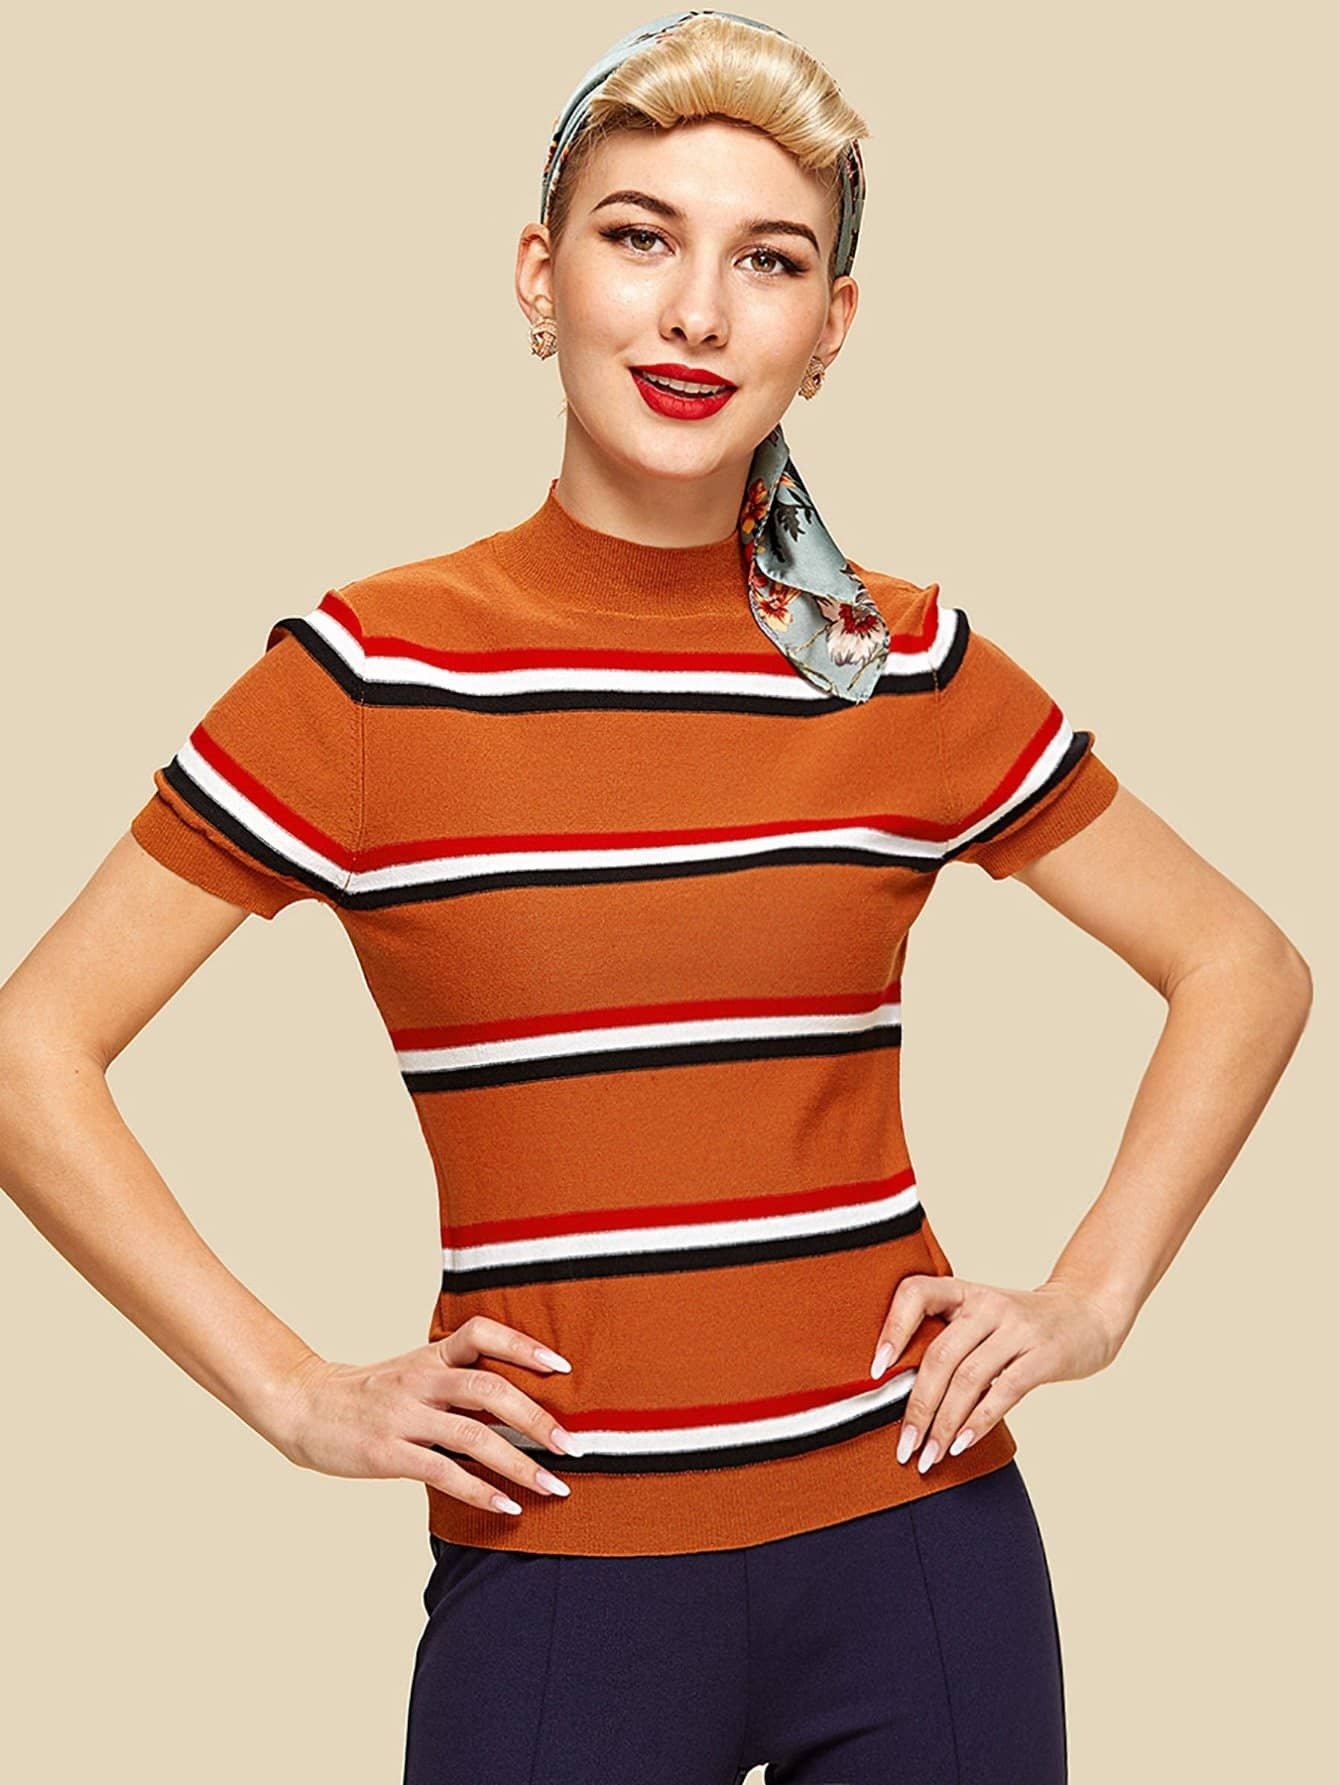 Mock Neck Striped Knit Top new yongnuo yn565ex yn565 ex ittl flash speedlite for nikon d3x d3s d2x d700 d300s d300 d200 d60 d40x d40 d90 d80 d5100 d7100